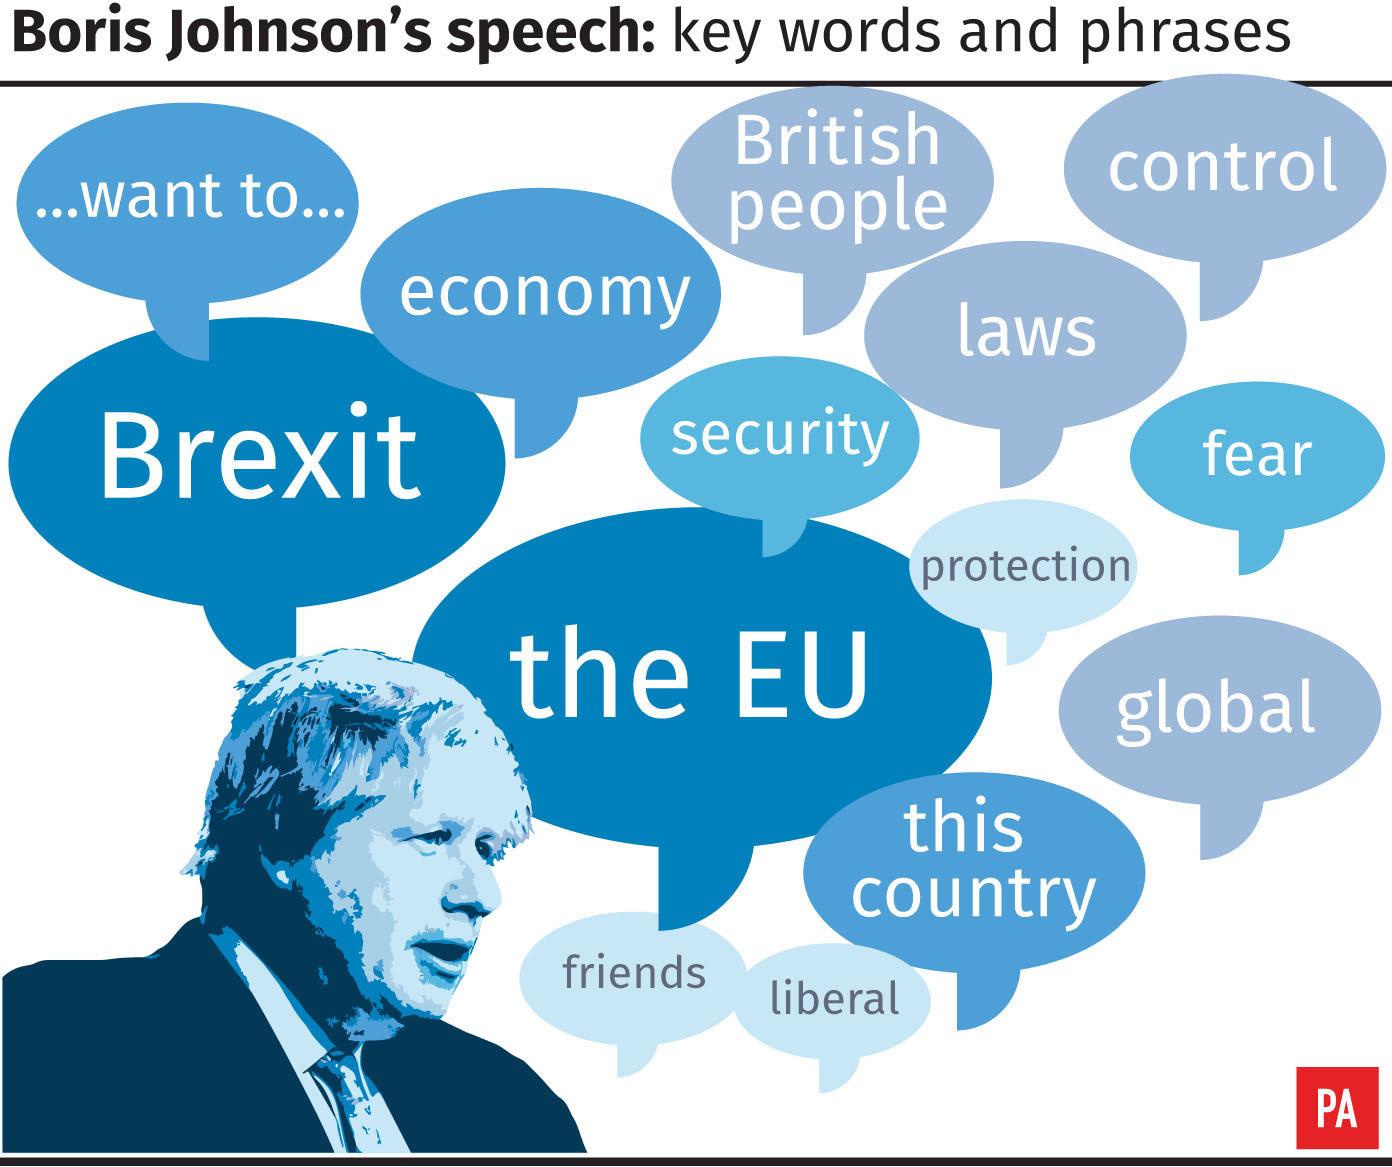 Boris Johnson's speech: key words and phrases